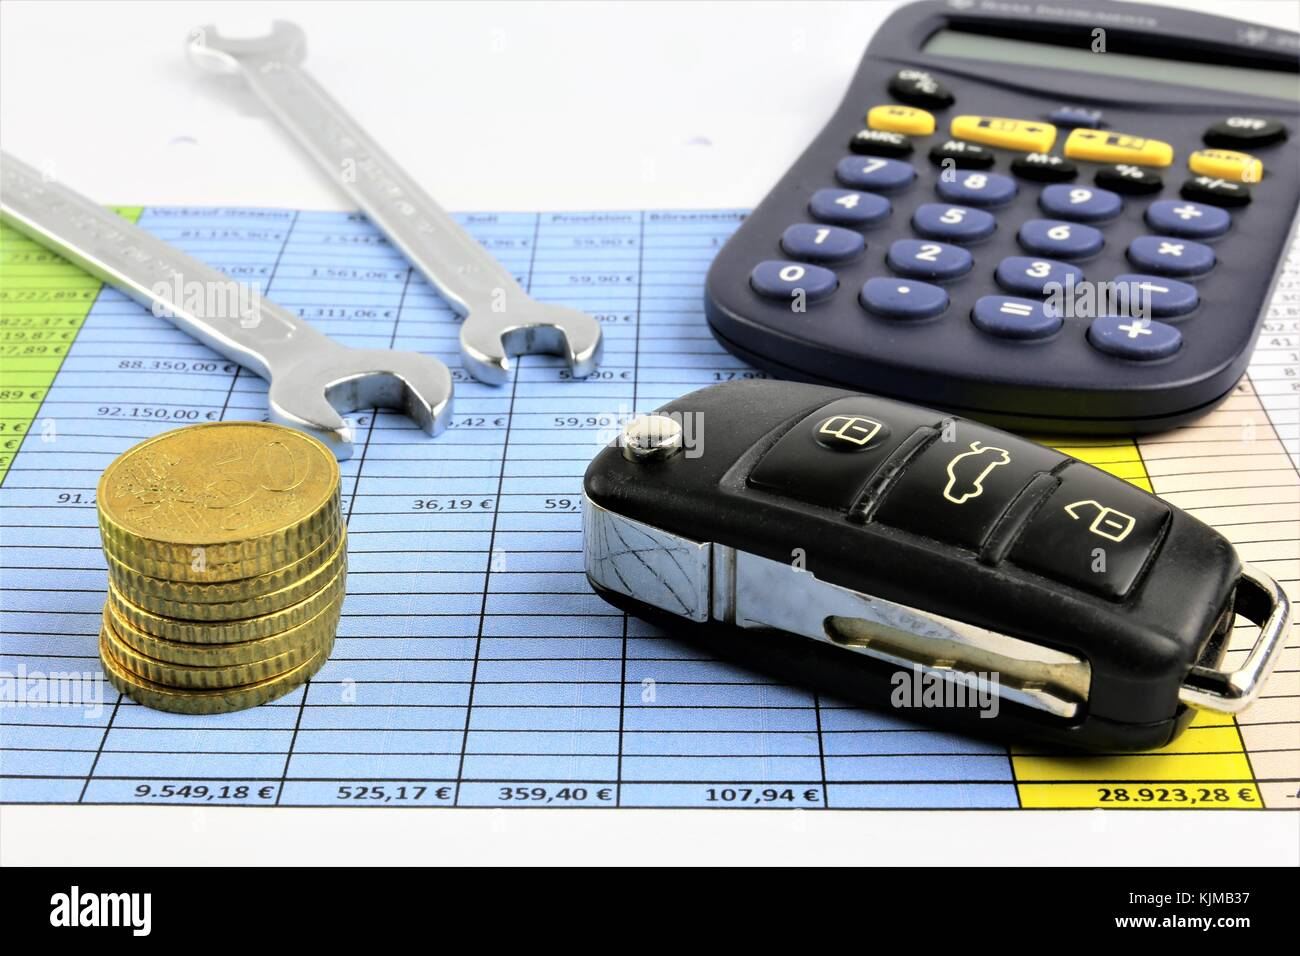 An concept Image of car maintenance costs - repair costs - Stock Image